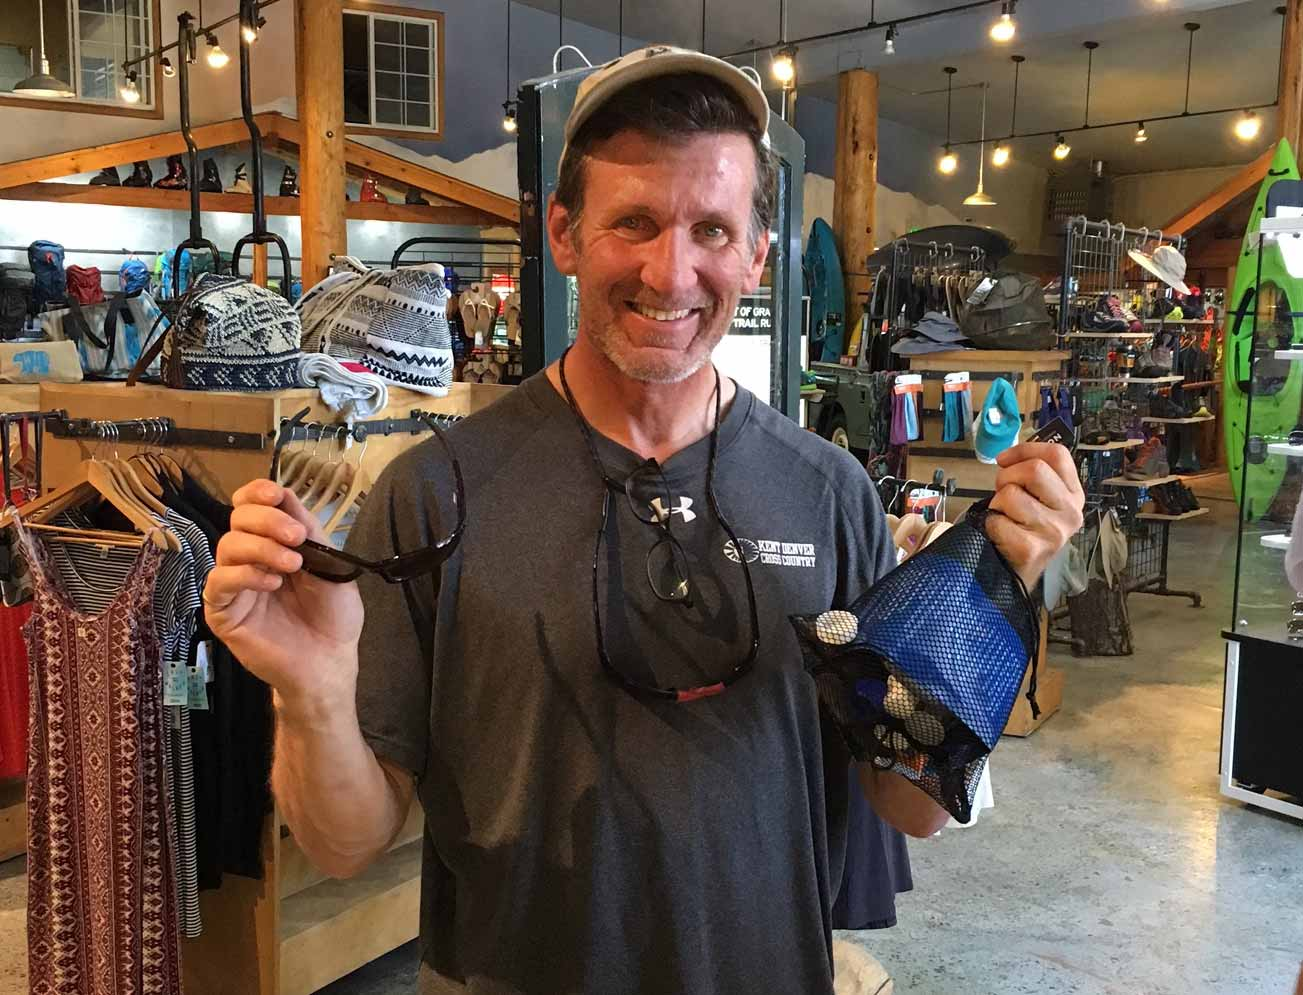 Thru-Hiking The Pacific Crest Trail | Re-stocking at Granite Chief